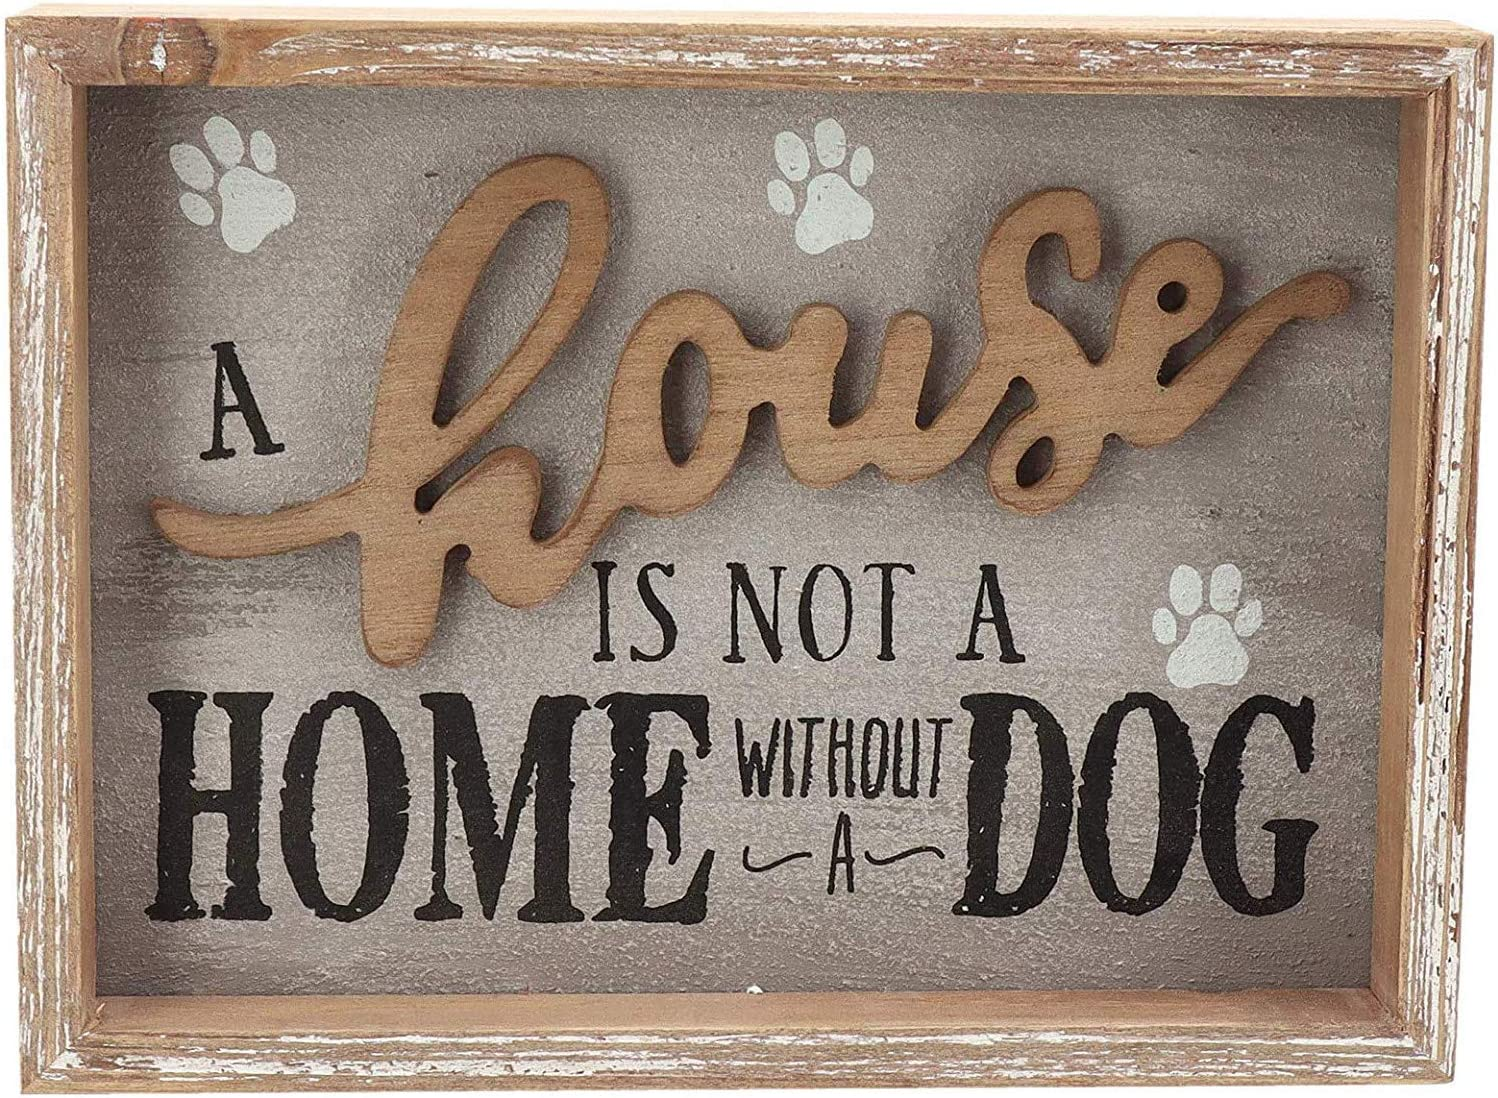 Rustic Wood Dog Sign Home Decor - A House is Not A Home Without A Dog, Funny Dog Sign for Home Decor, 9.5 X 1.5 X 7 inch